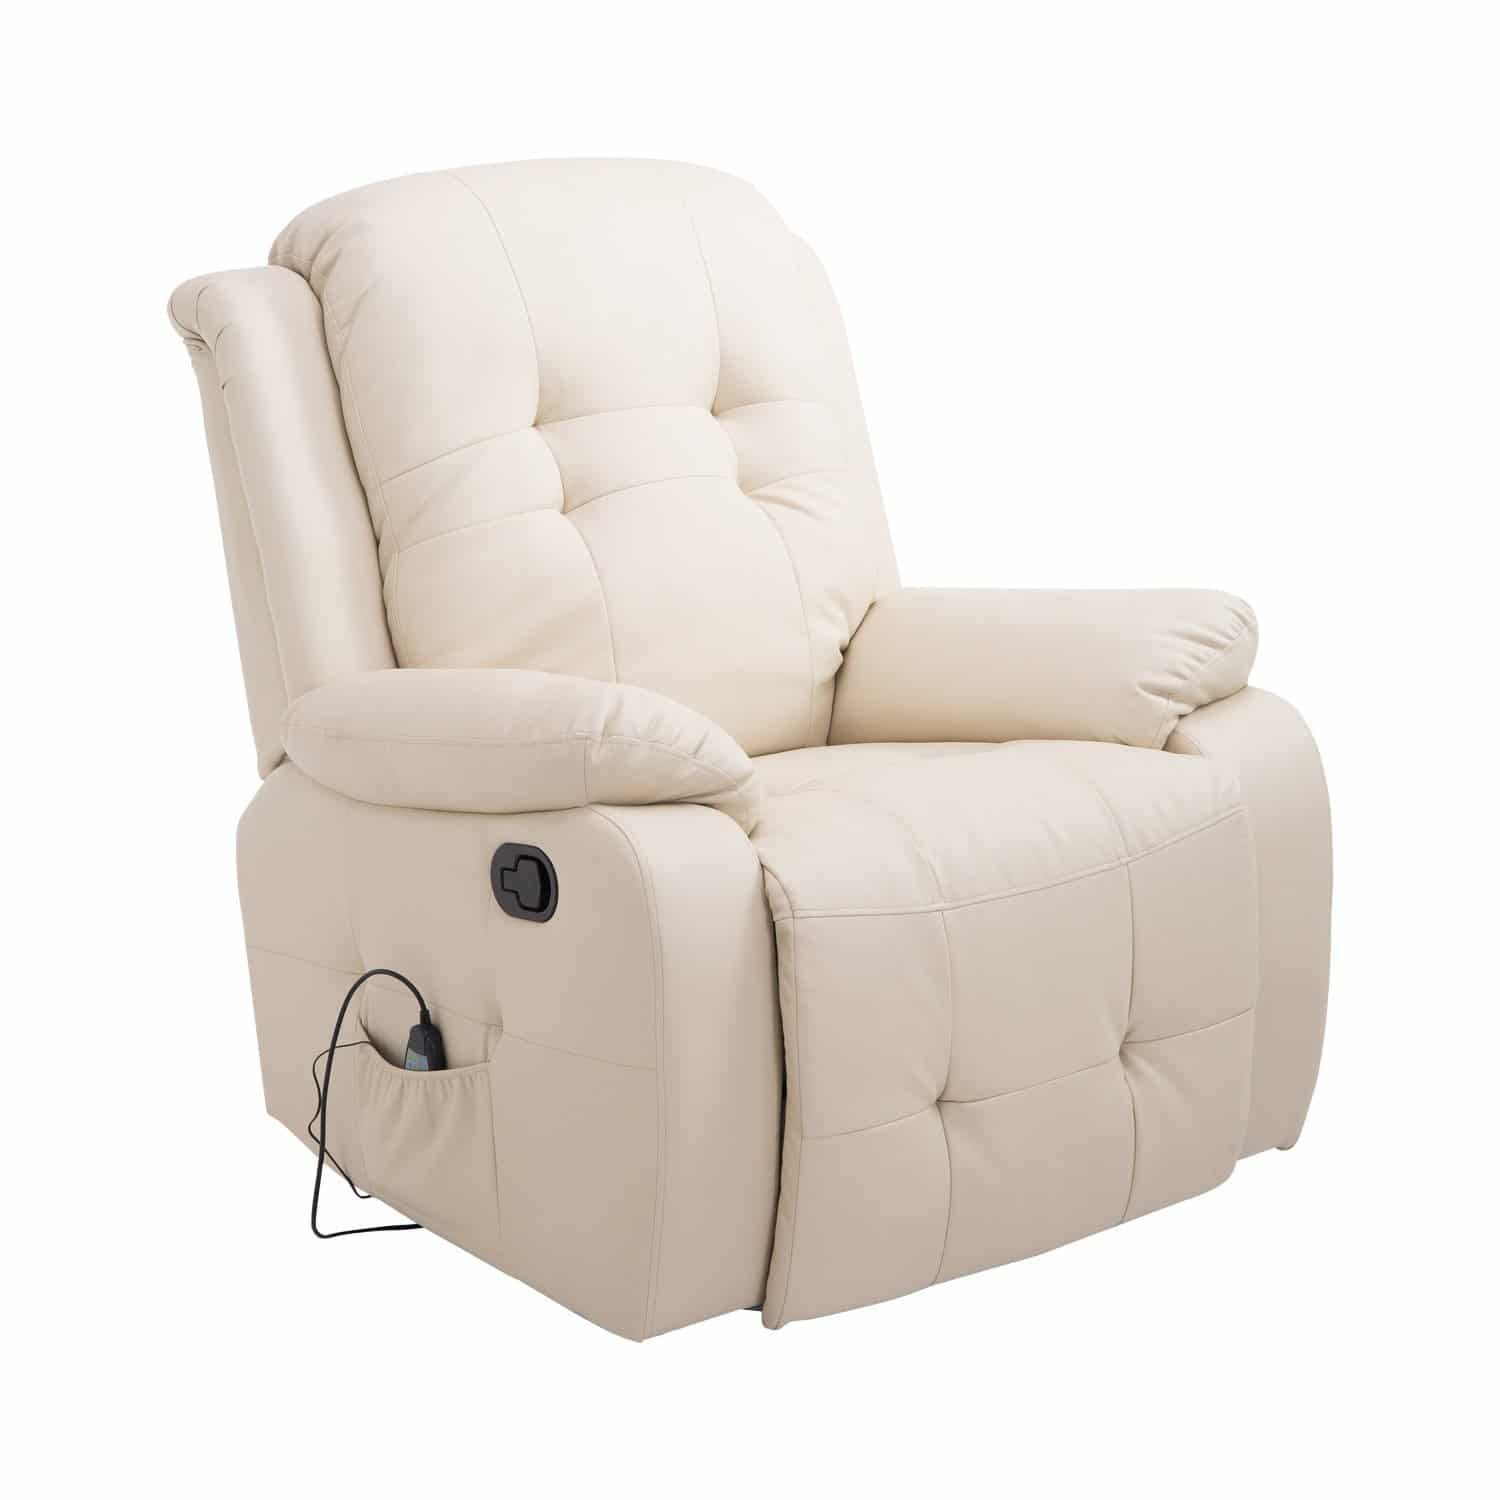 recliner massage chair swivel very best reviews 2018 top brands rating and comparison